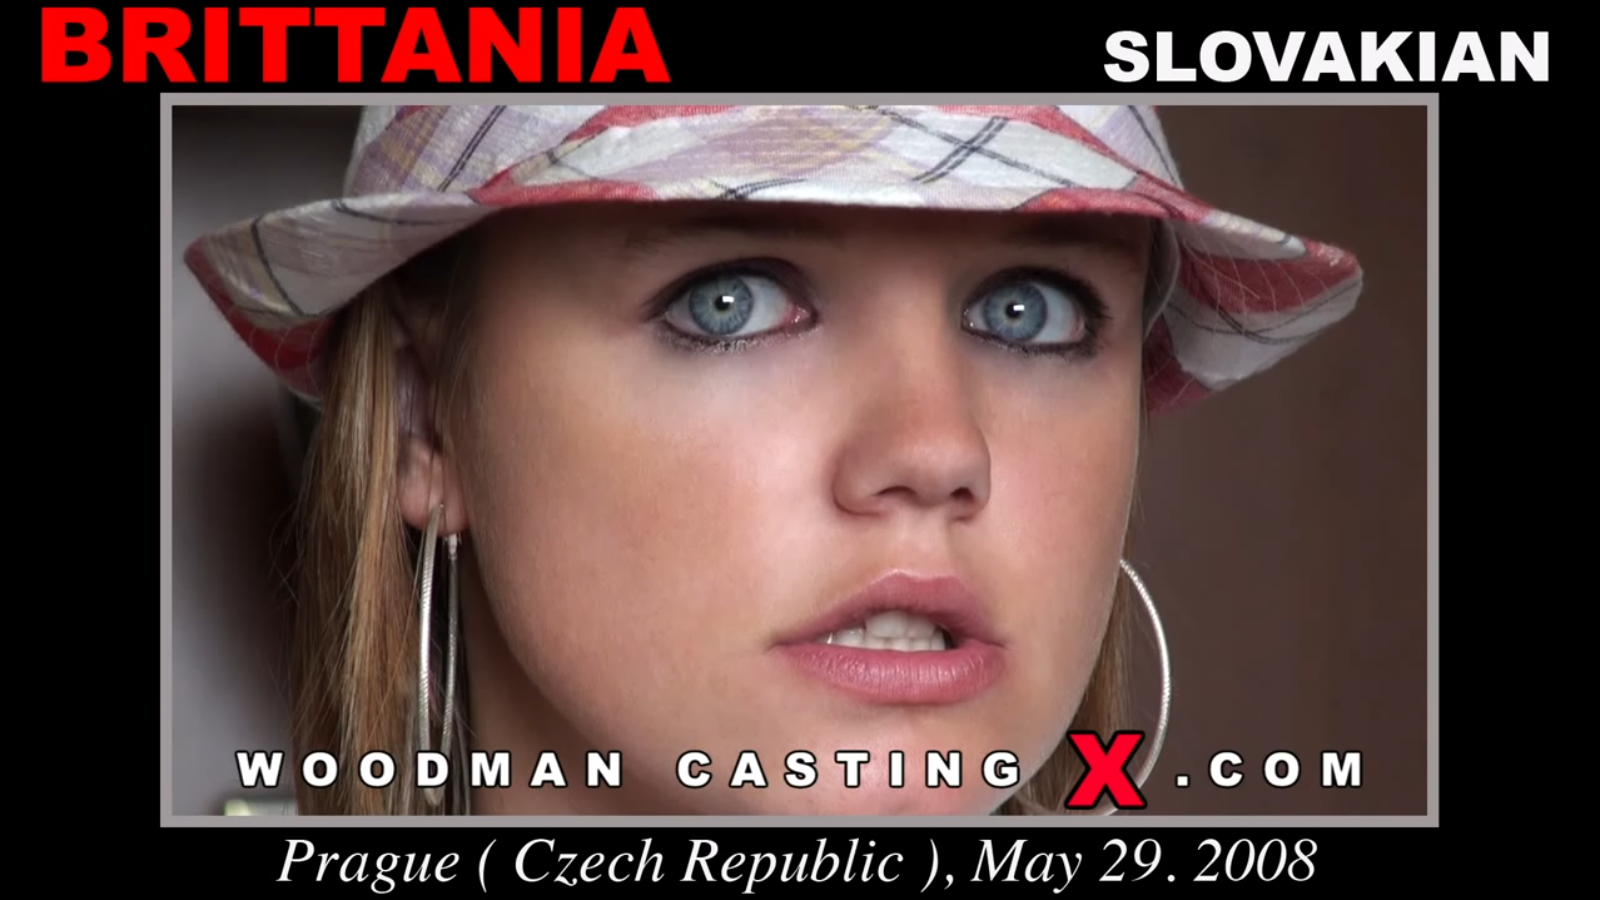 woodman casting x - brittania - nude porn naked